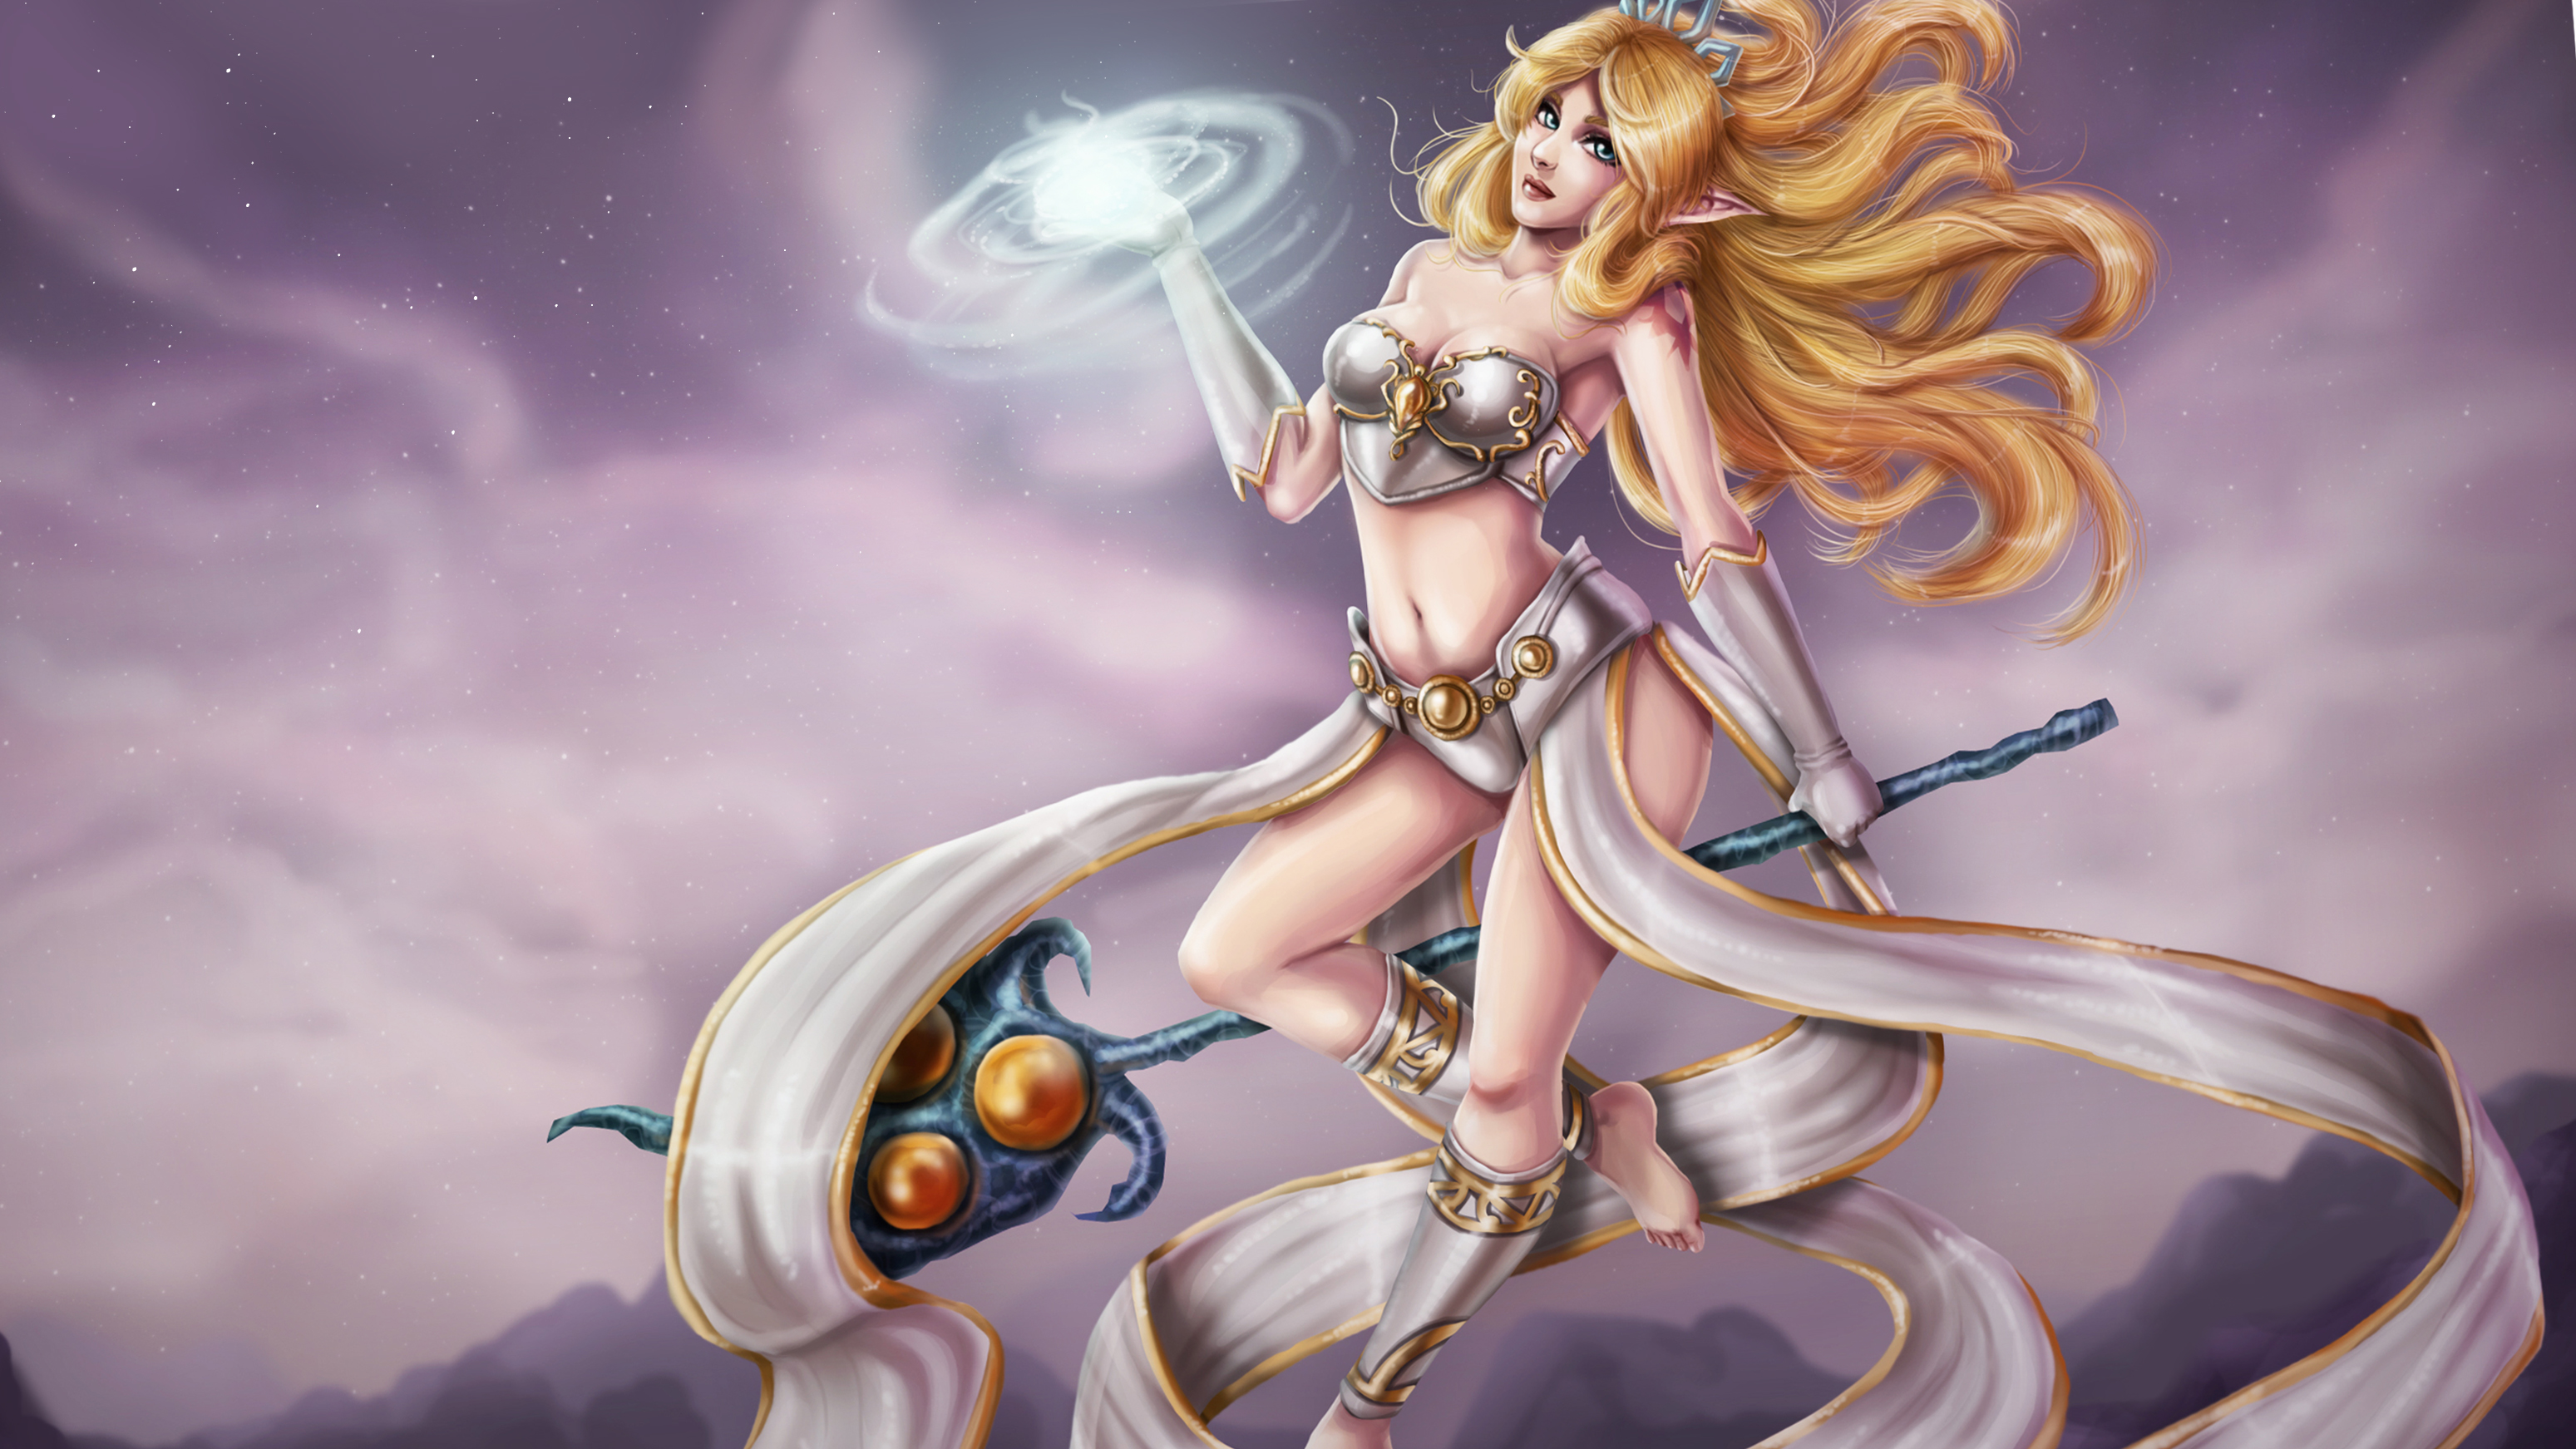 Janna Lolwallpapers